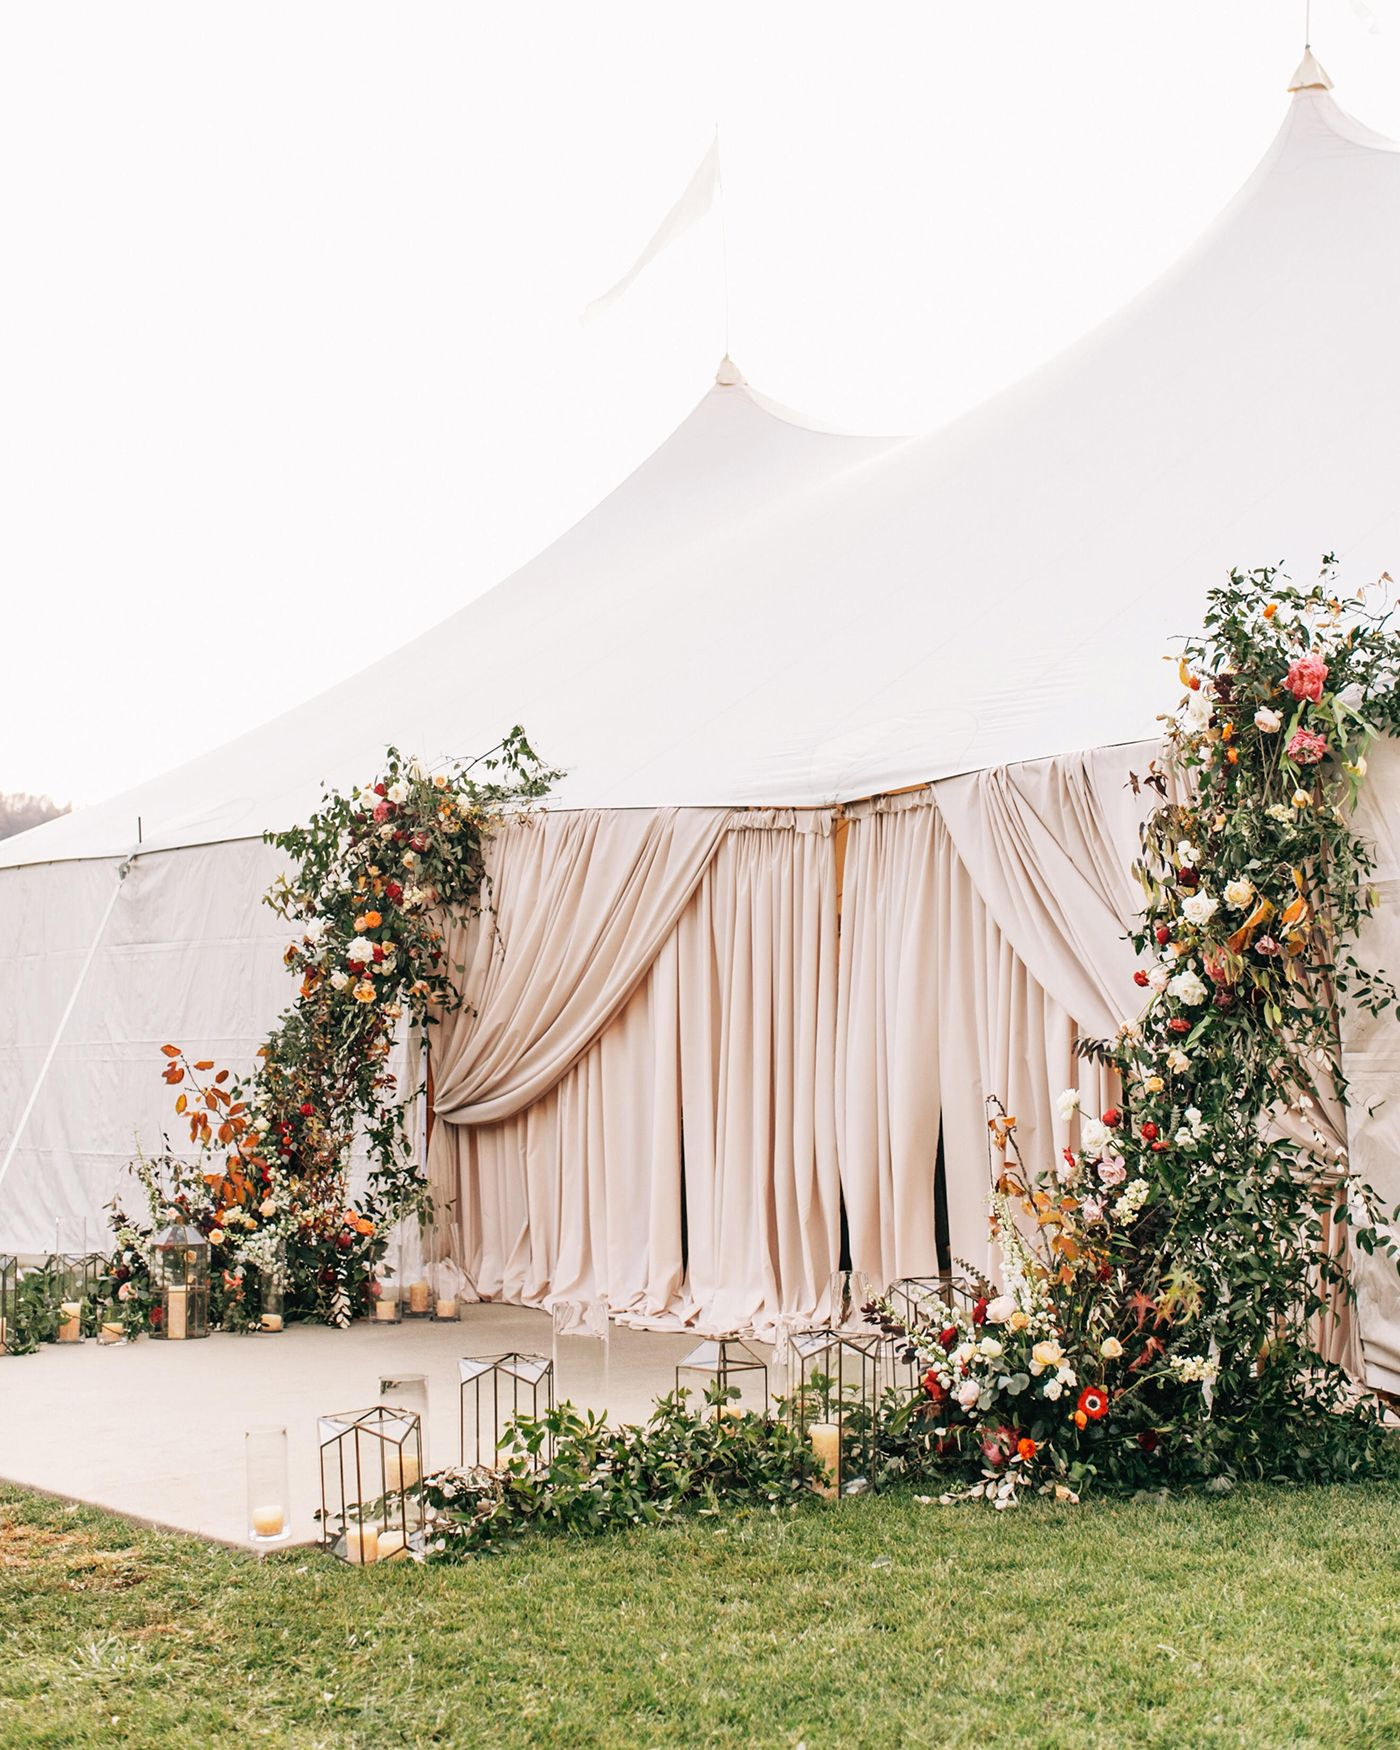 Magical Wedding Backdrop Ideas: 15 Magical Tent Decor Ideas For An Outdoor Wedding